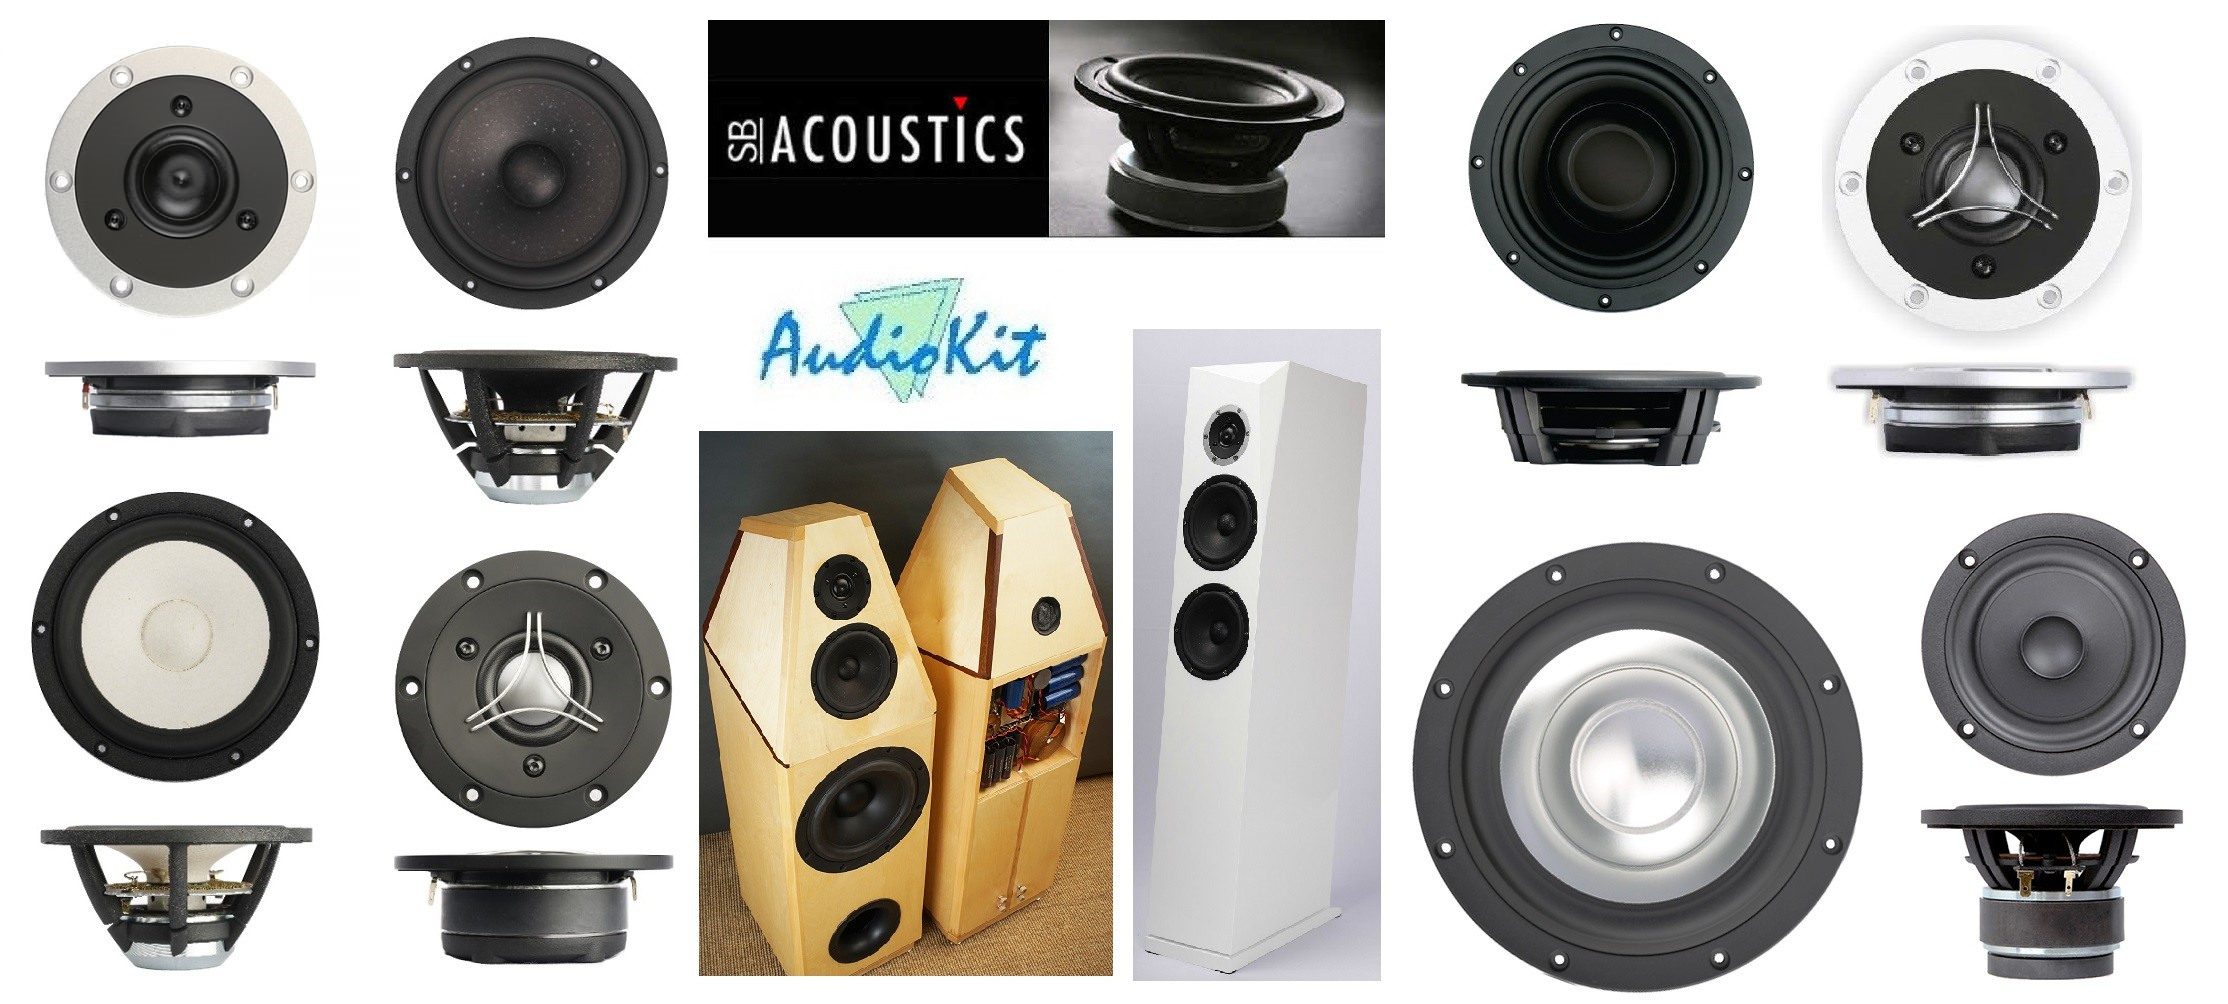 sb acoustic audiokit speakers